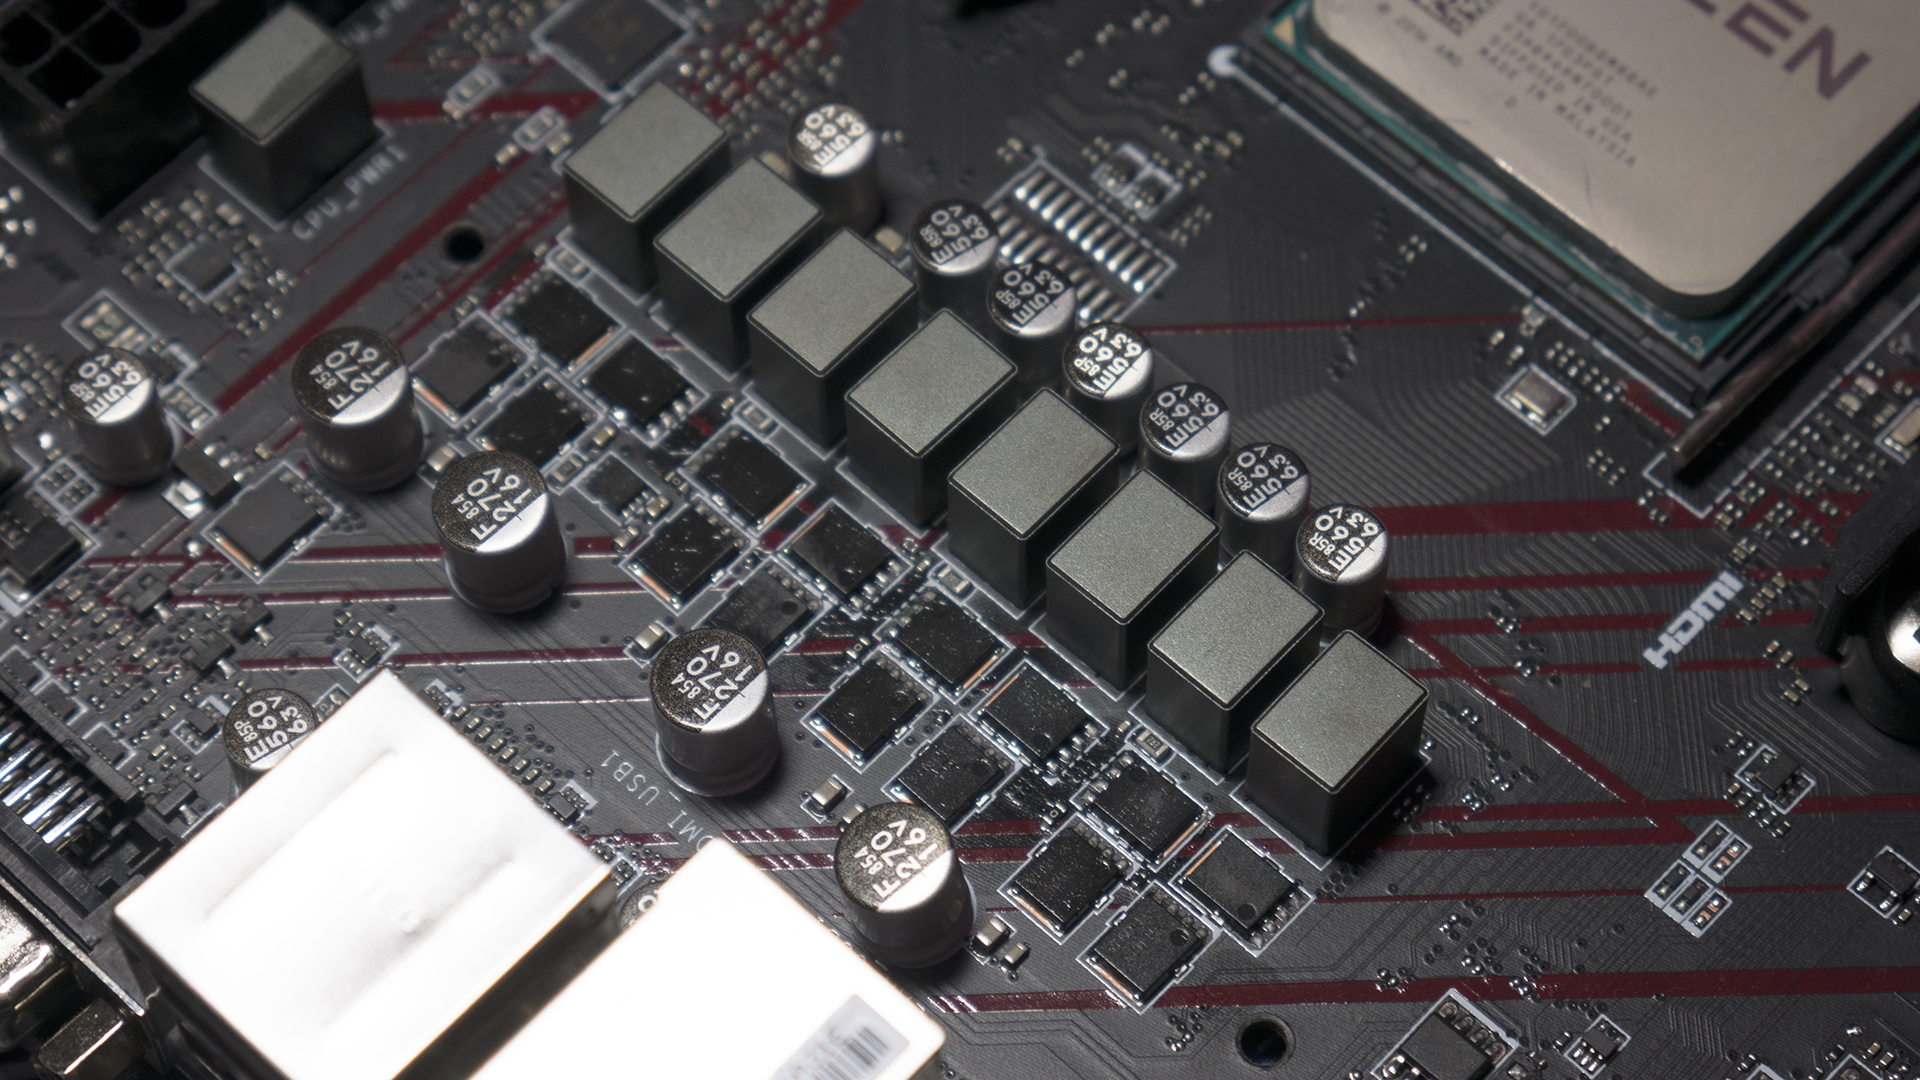 Visual Inspection - The $120 MSI X470 Gaming Plus Review